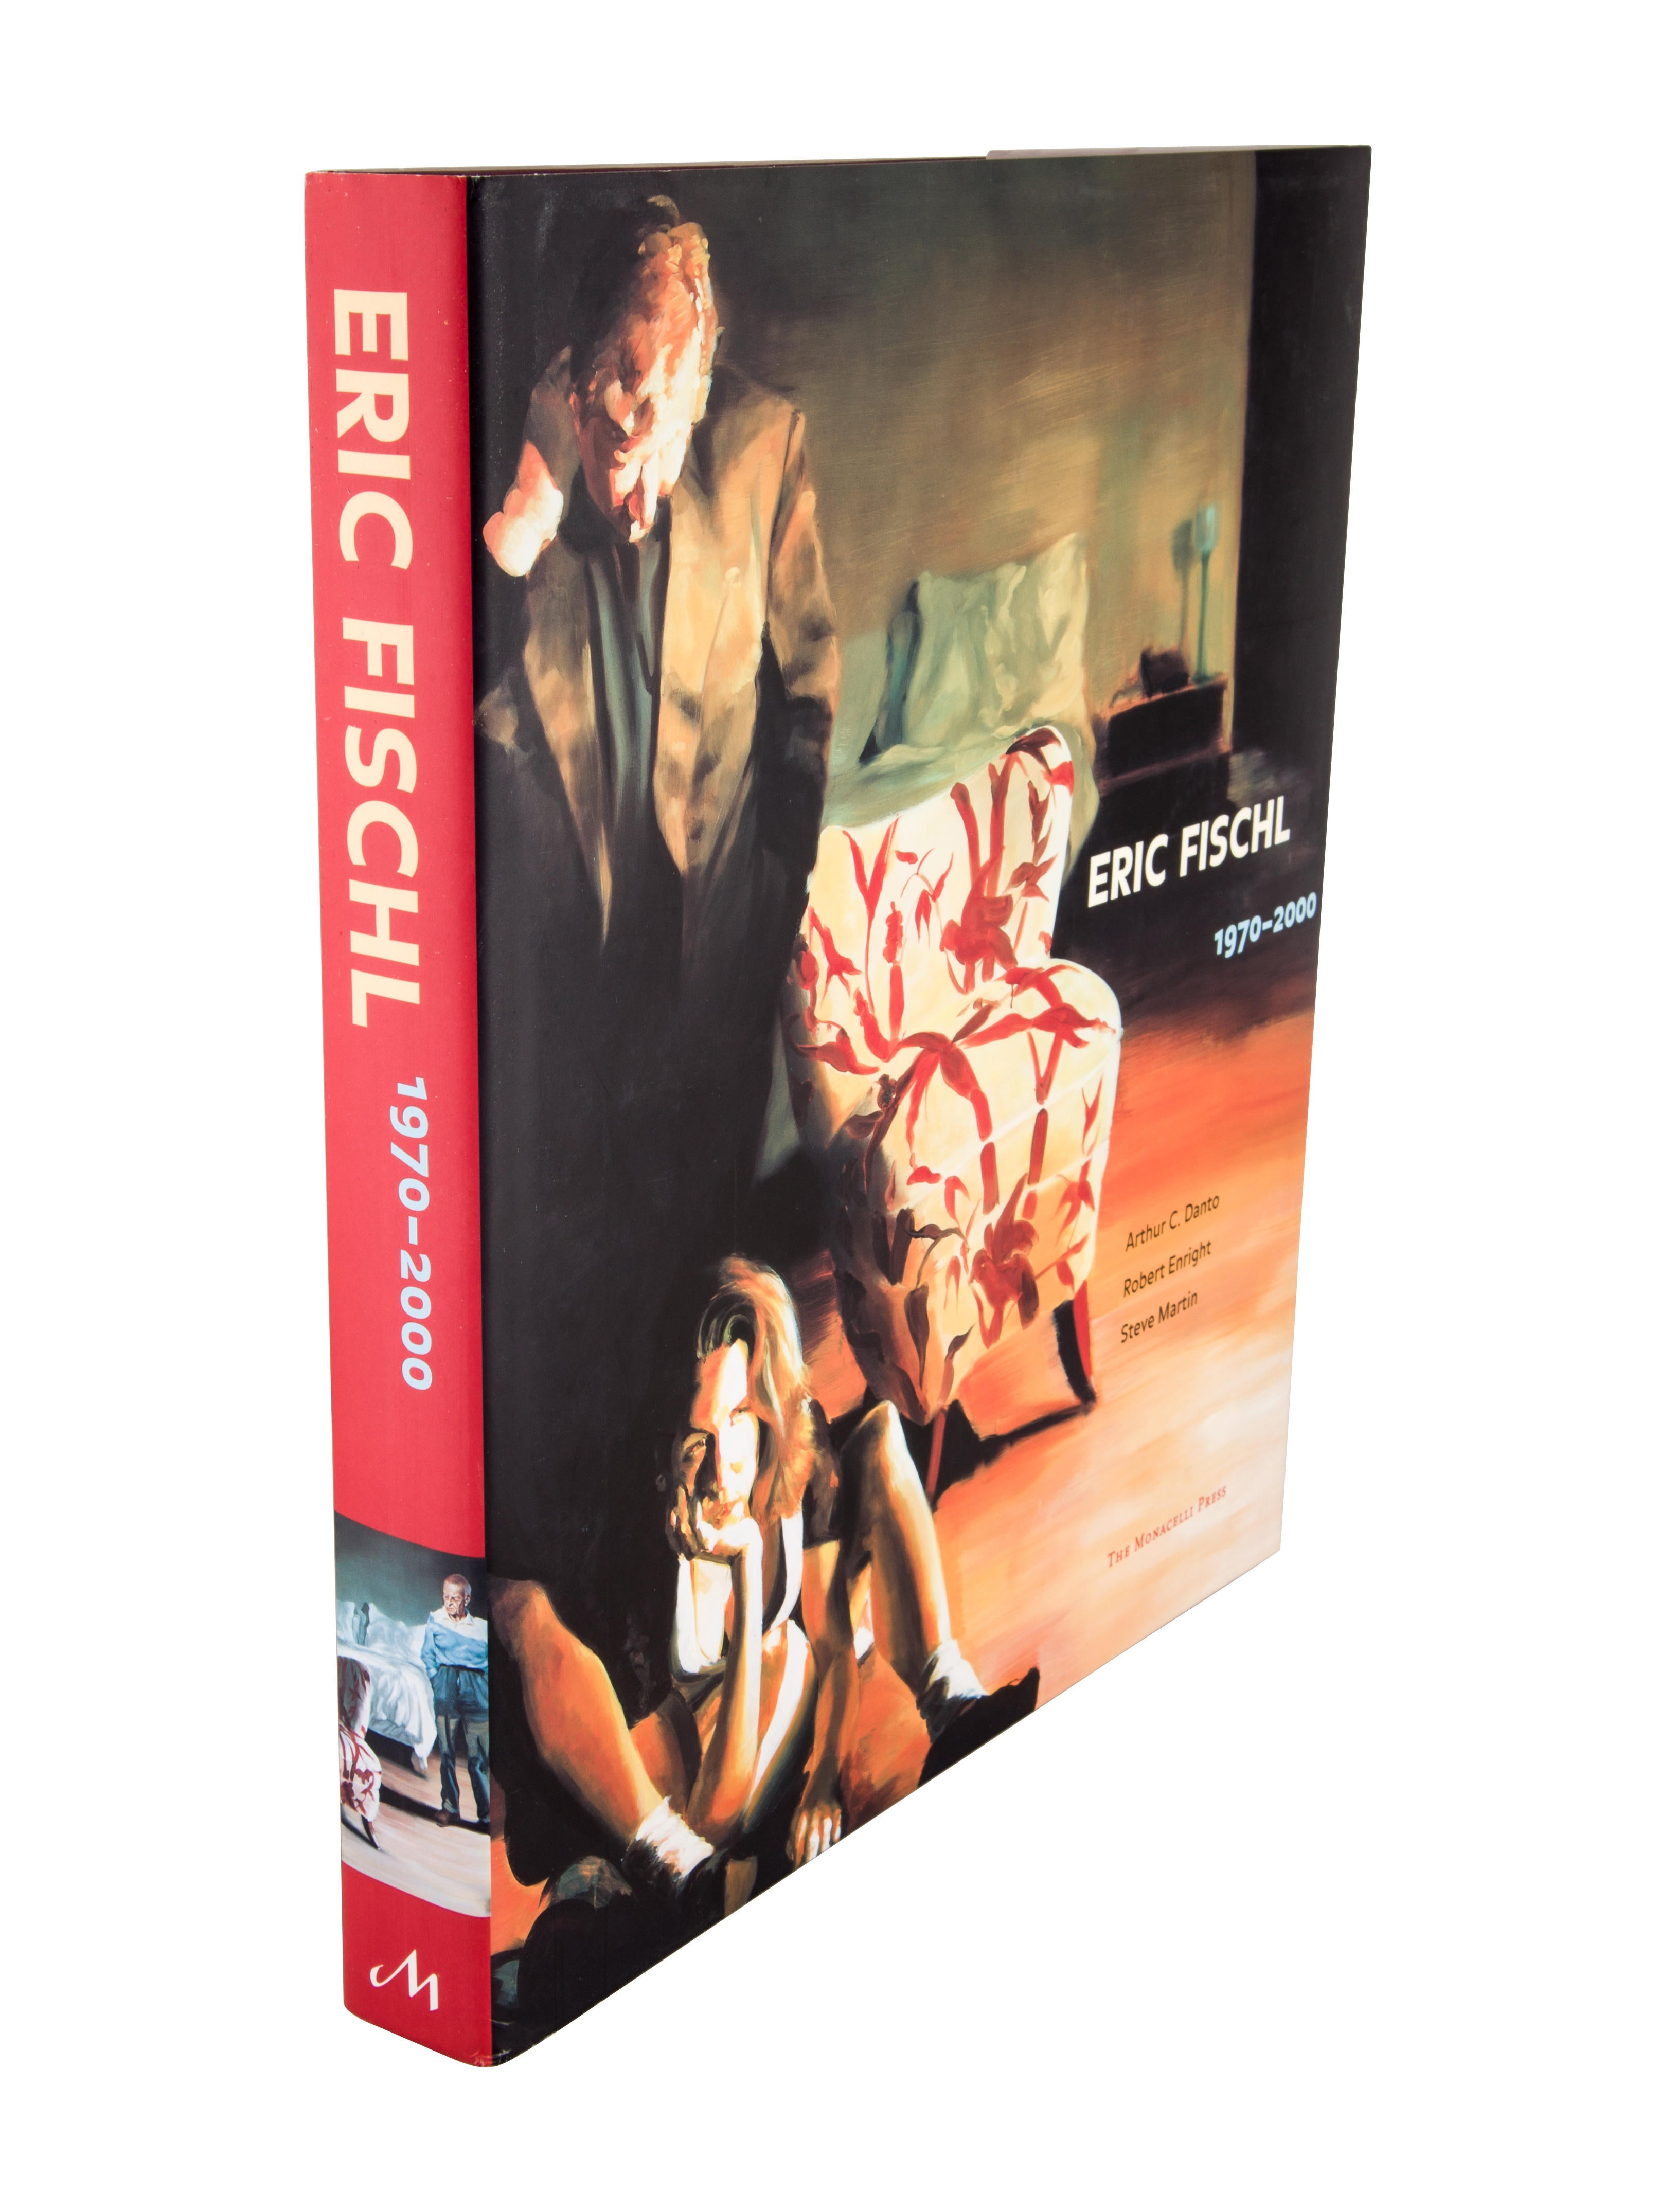 Book eric fischl 1970 2000 decor and accessories for Home decor 2000